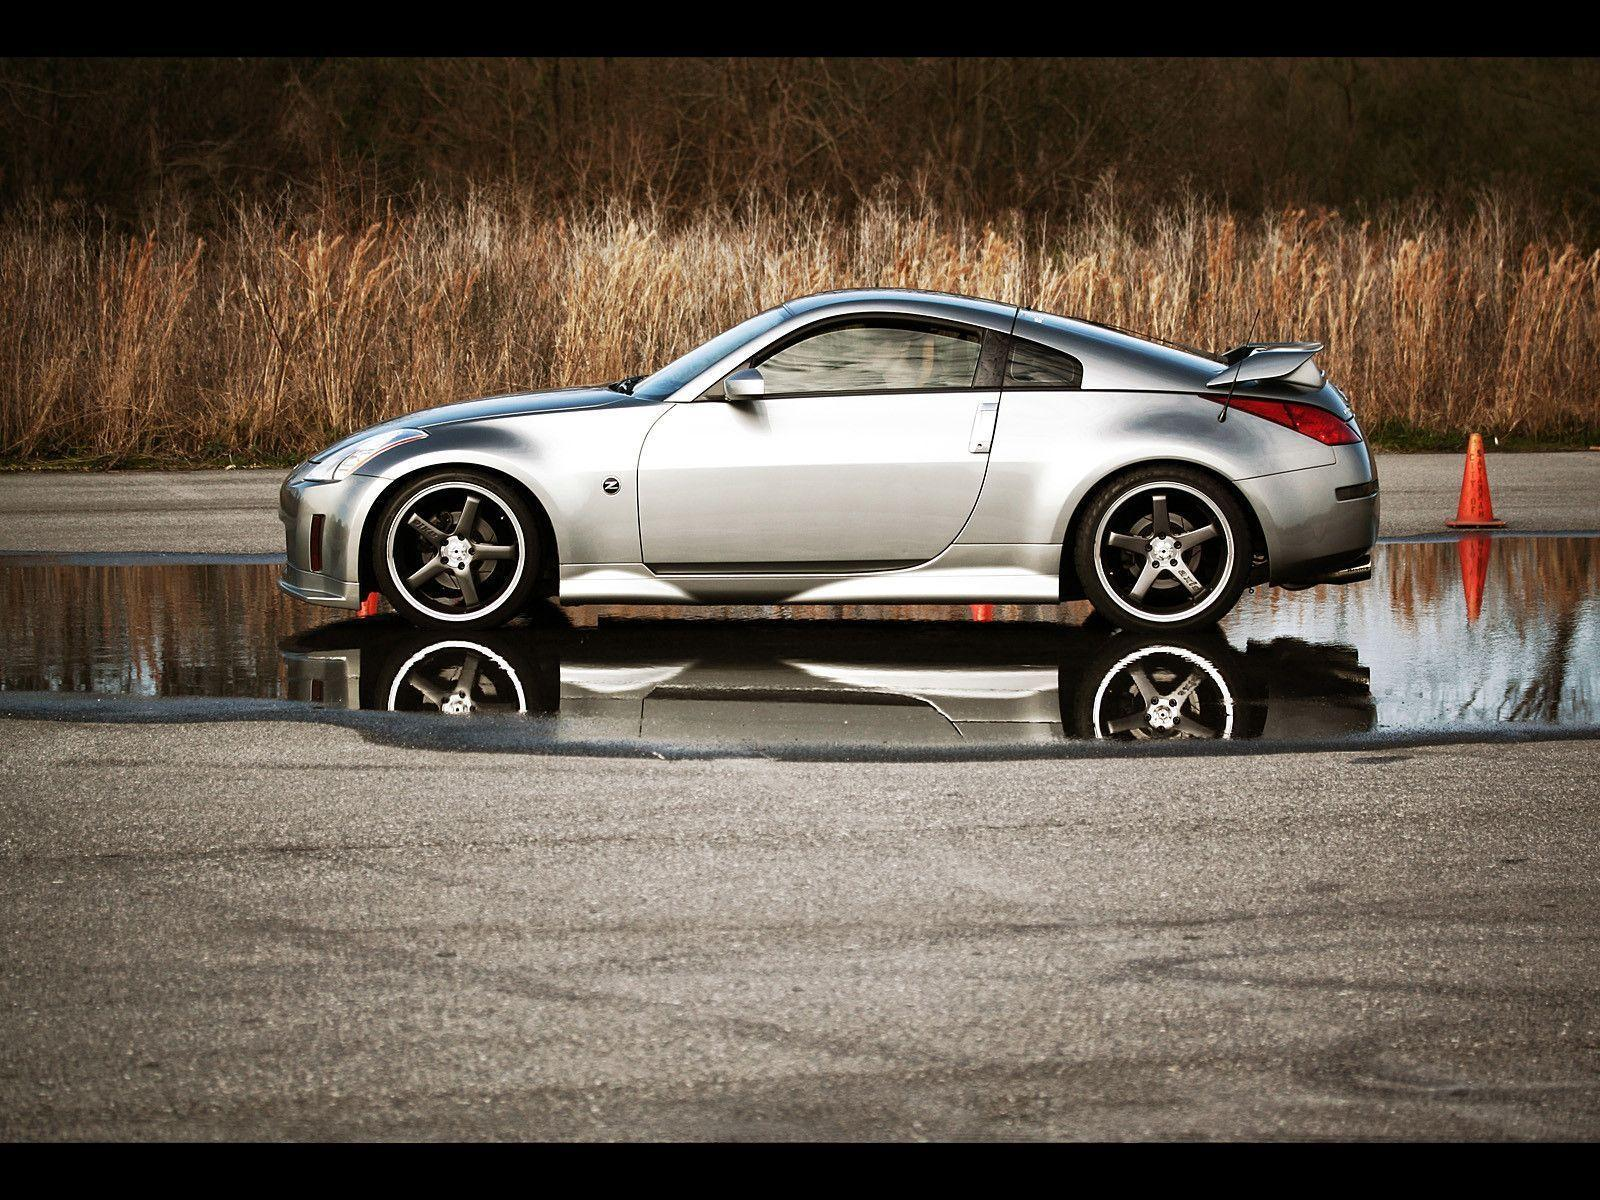 Nissan 350Z Photography by Webb Bland - Frozen Moment - 1600x1200 ...